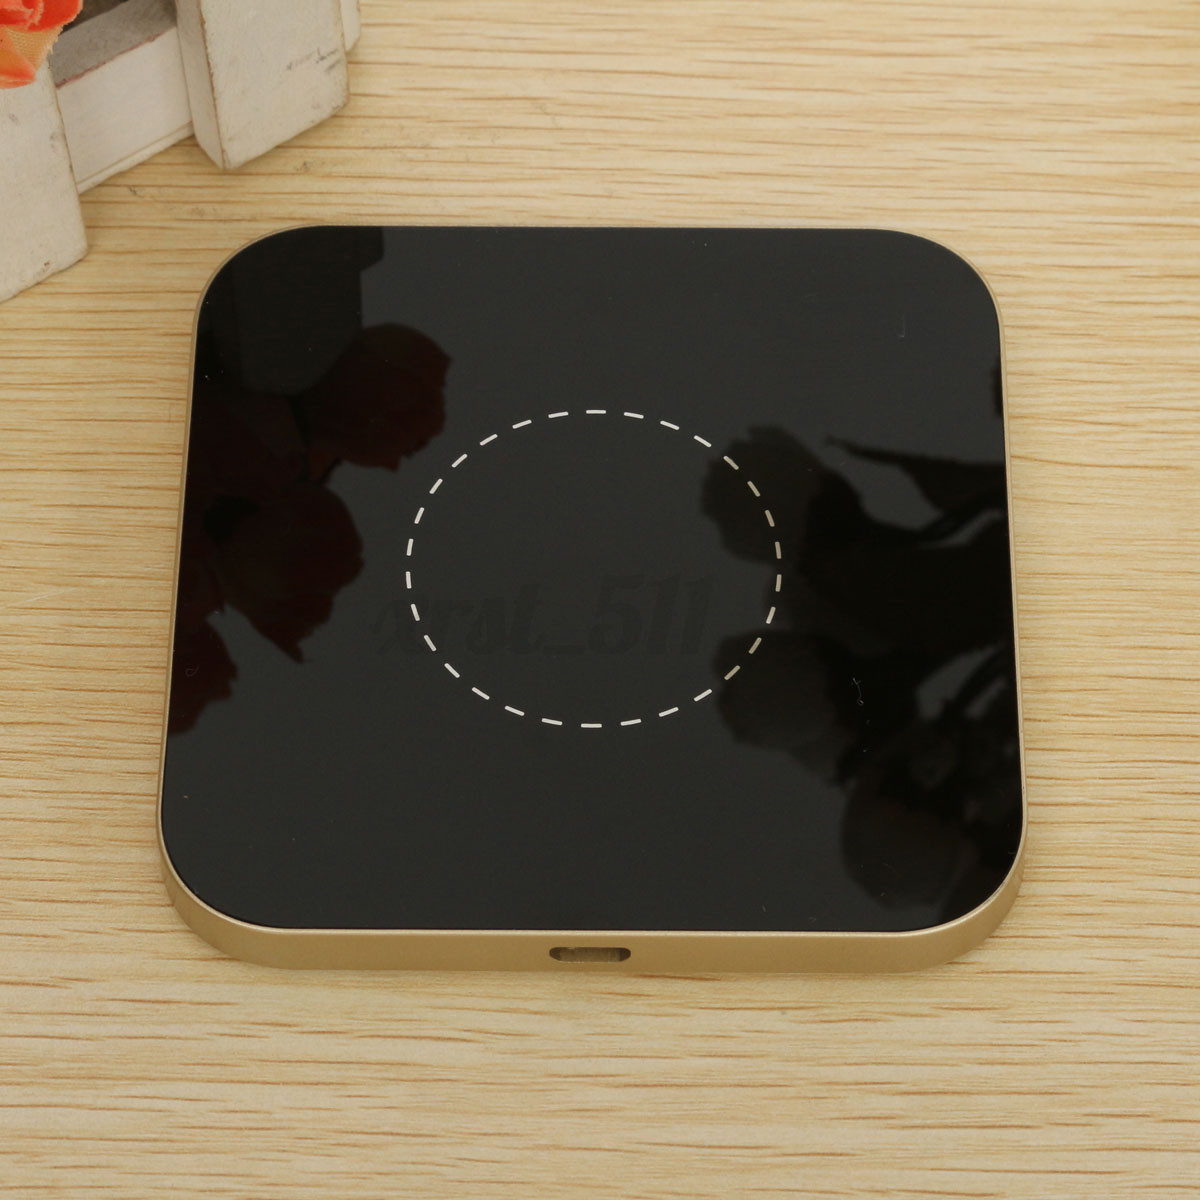 qi sans fil wireless chargeur pad induction pour iphone 6. Black Bedroom Furniture Sets. Home Design Ideas